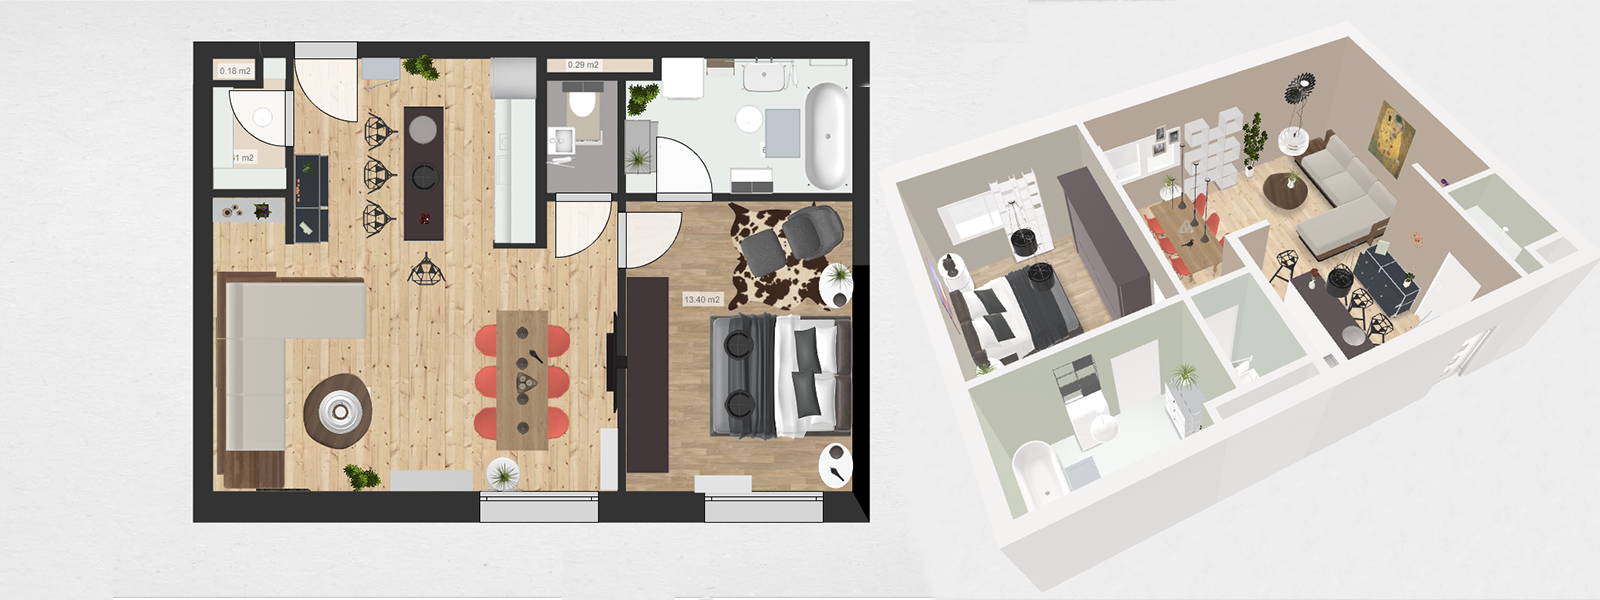 Charming Roomle Demo 3D Floor Plans